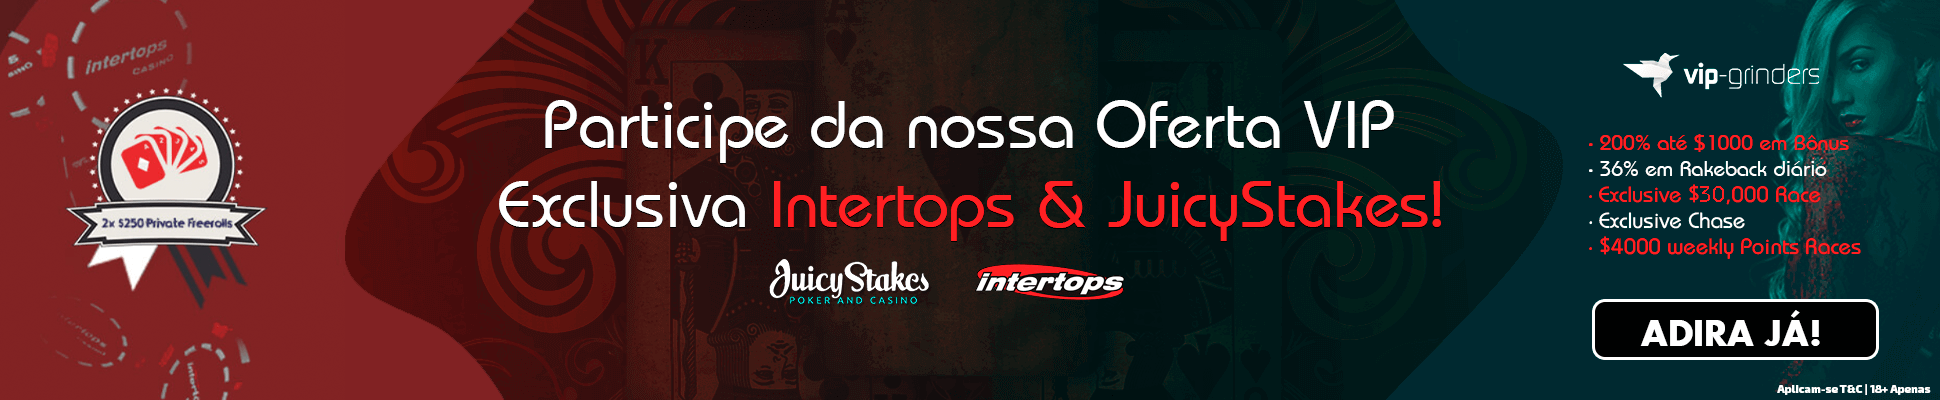 intertops-banner-MAIO-2-1